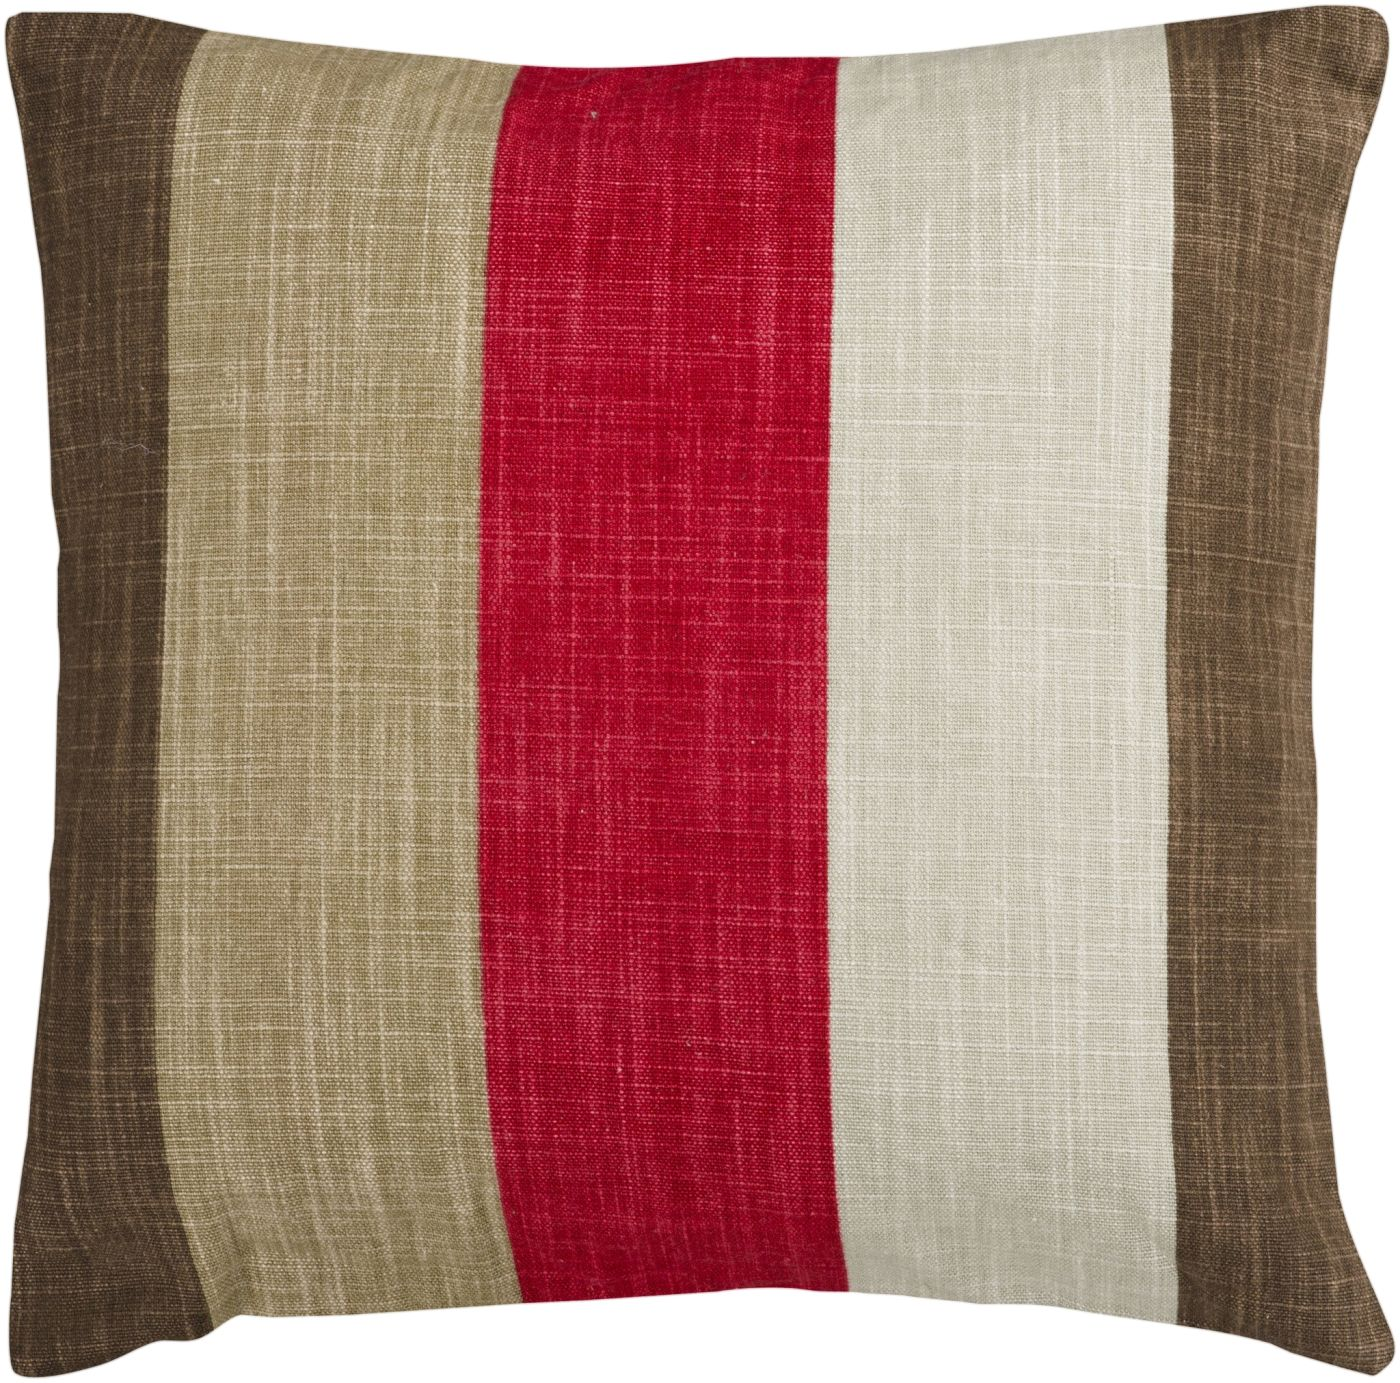 Cute Neutral Throw Pillows : Surya Simple Stripe Throw Pillow Neutral, Brown JS012-1818P. Only $36.00 at Contemporary ...